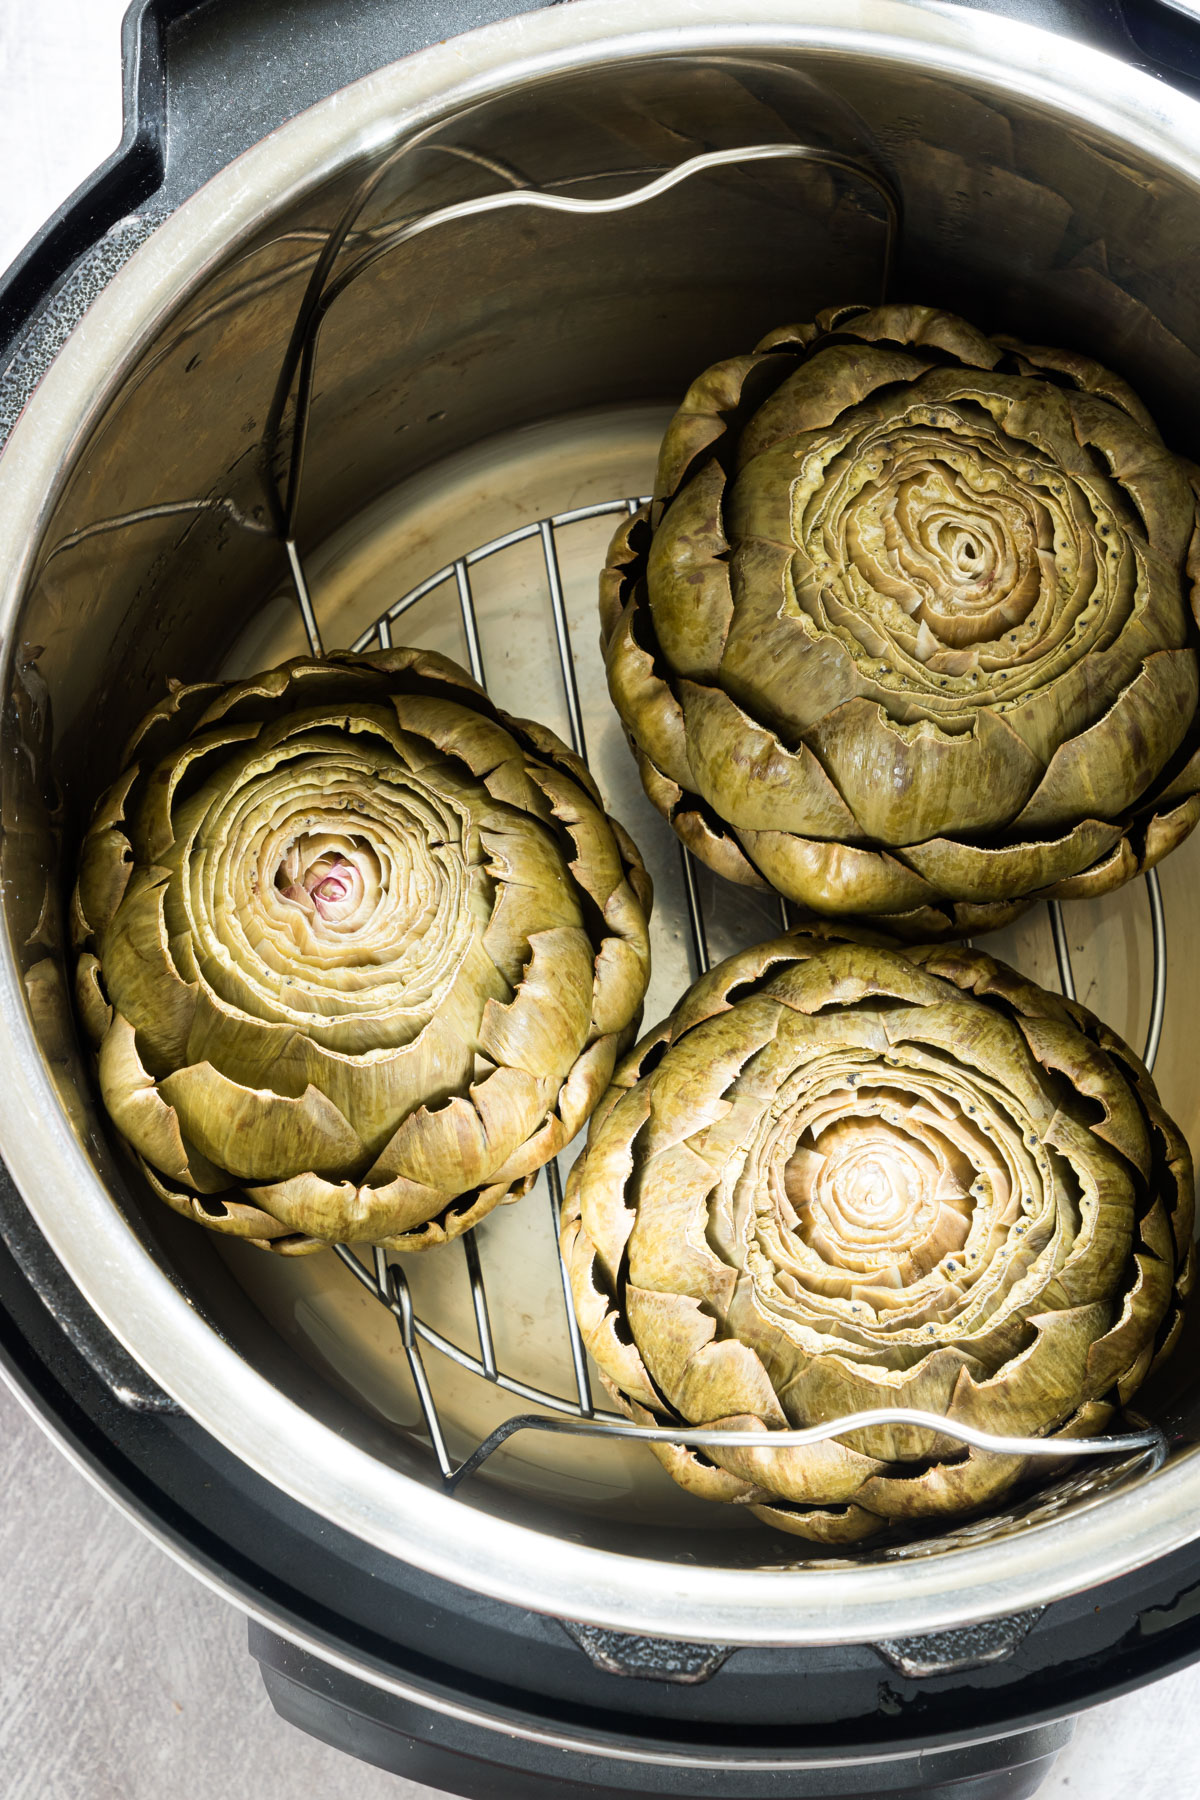 3 cooked artichokes in an instant saucepan